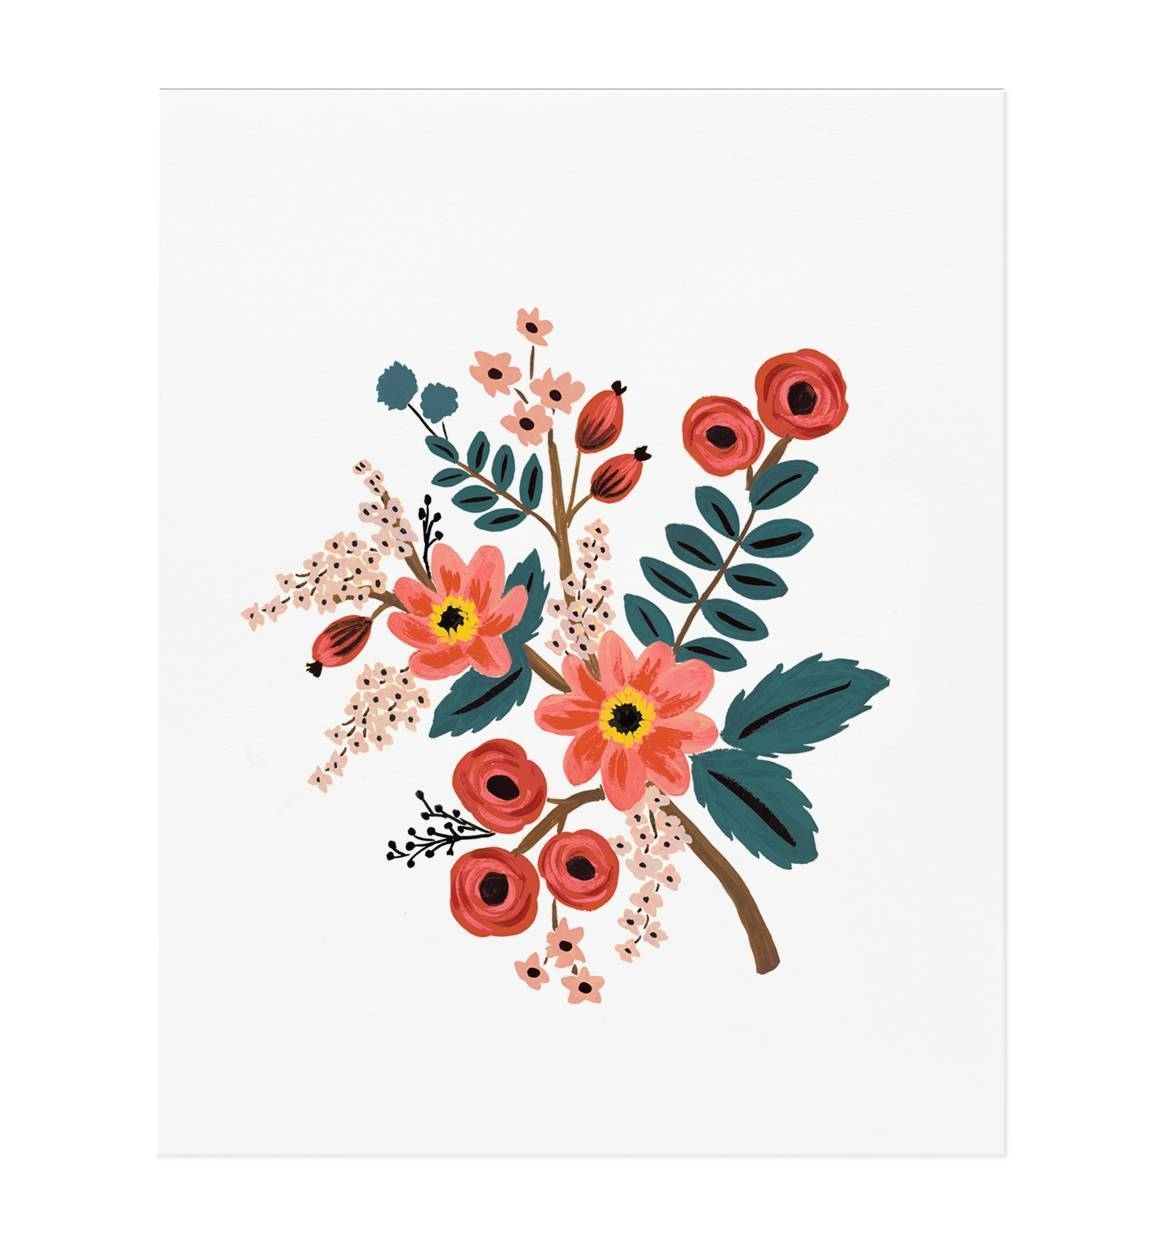 Coral Botanical Art Printrifle Paper Co.   Made In Usa Within Most Current Framed Coral Art Prints (Gallery 13 of 15)